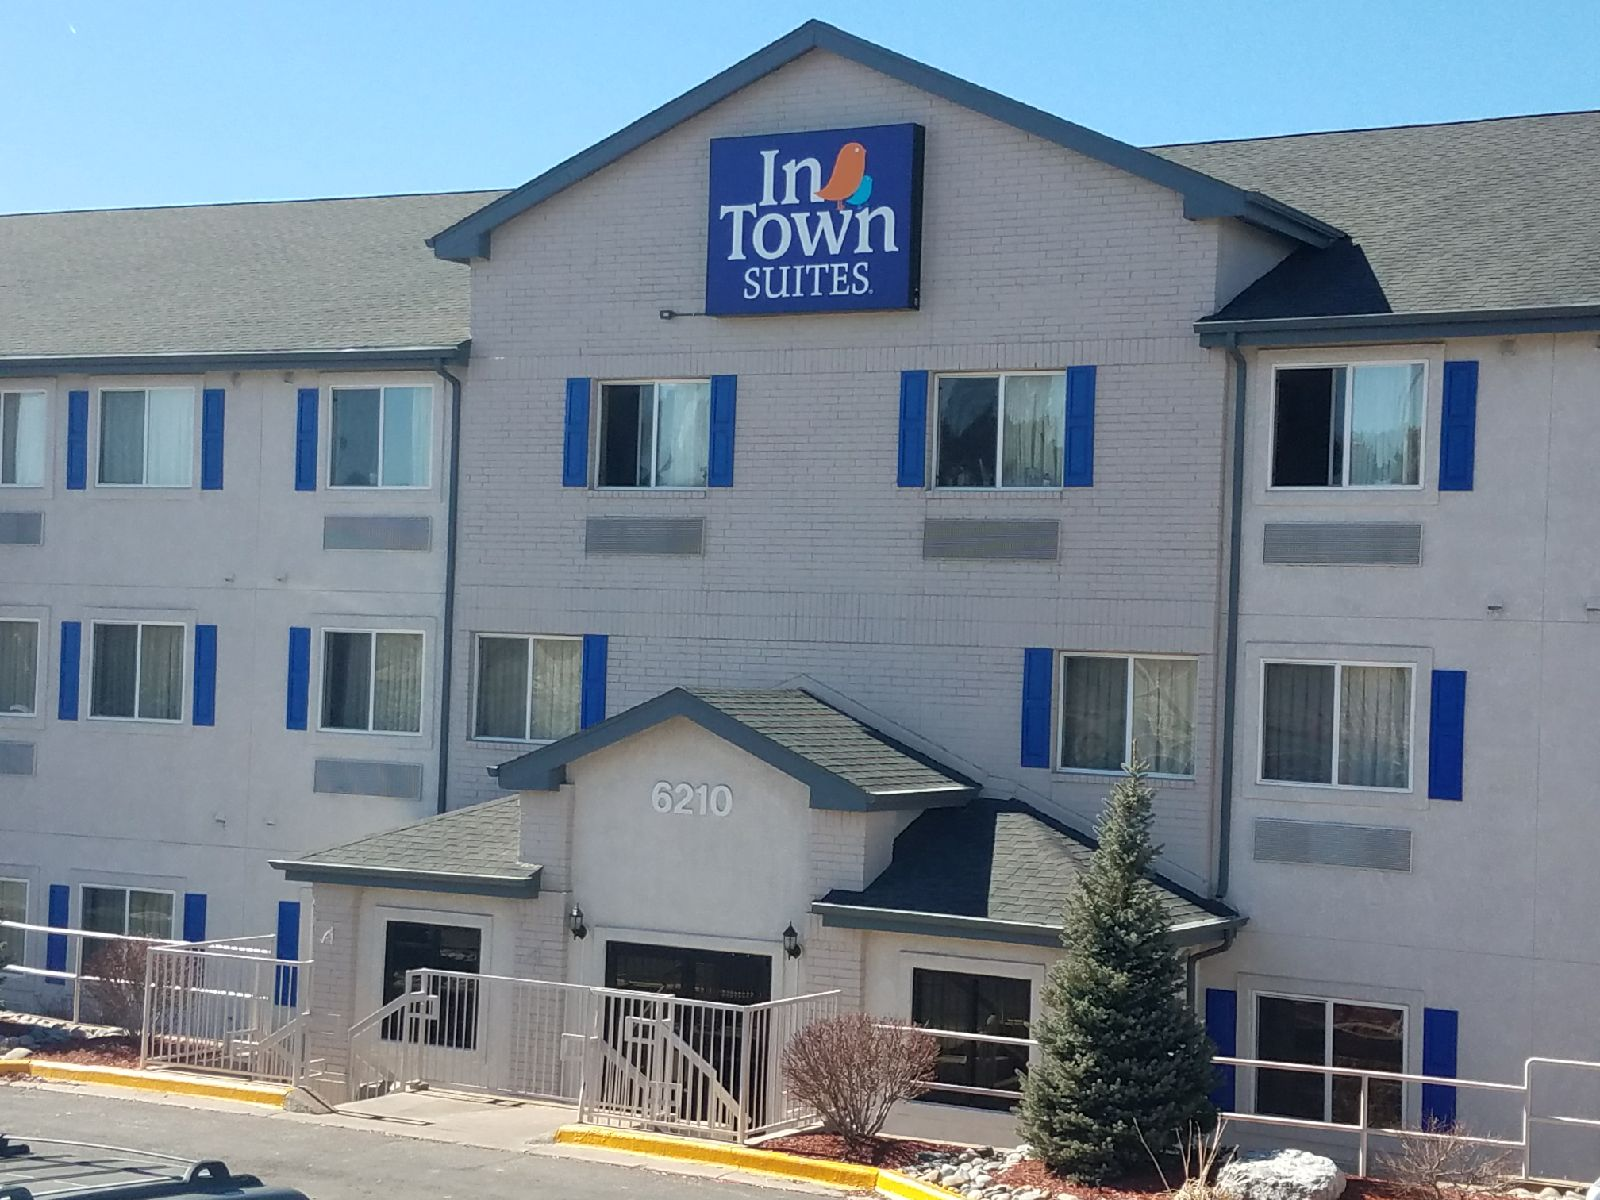 InTown Suites Extended Stay Colorado Springs